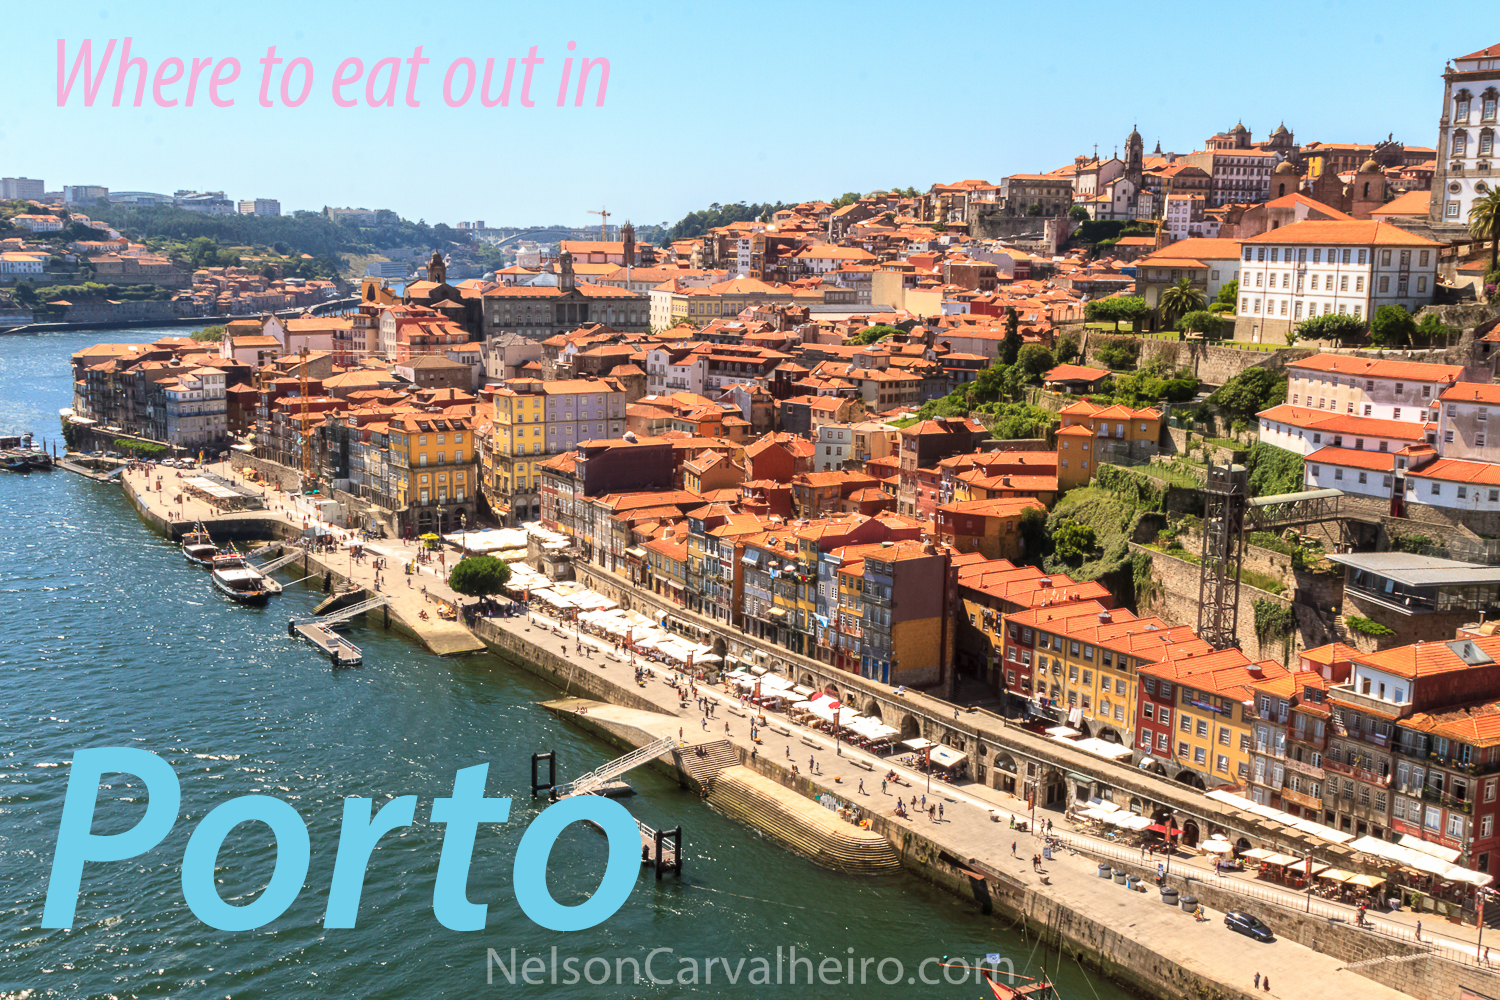 Where to eat out in Porto